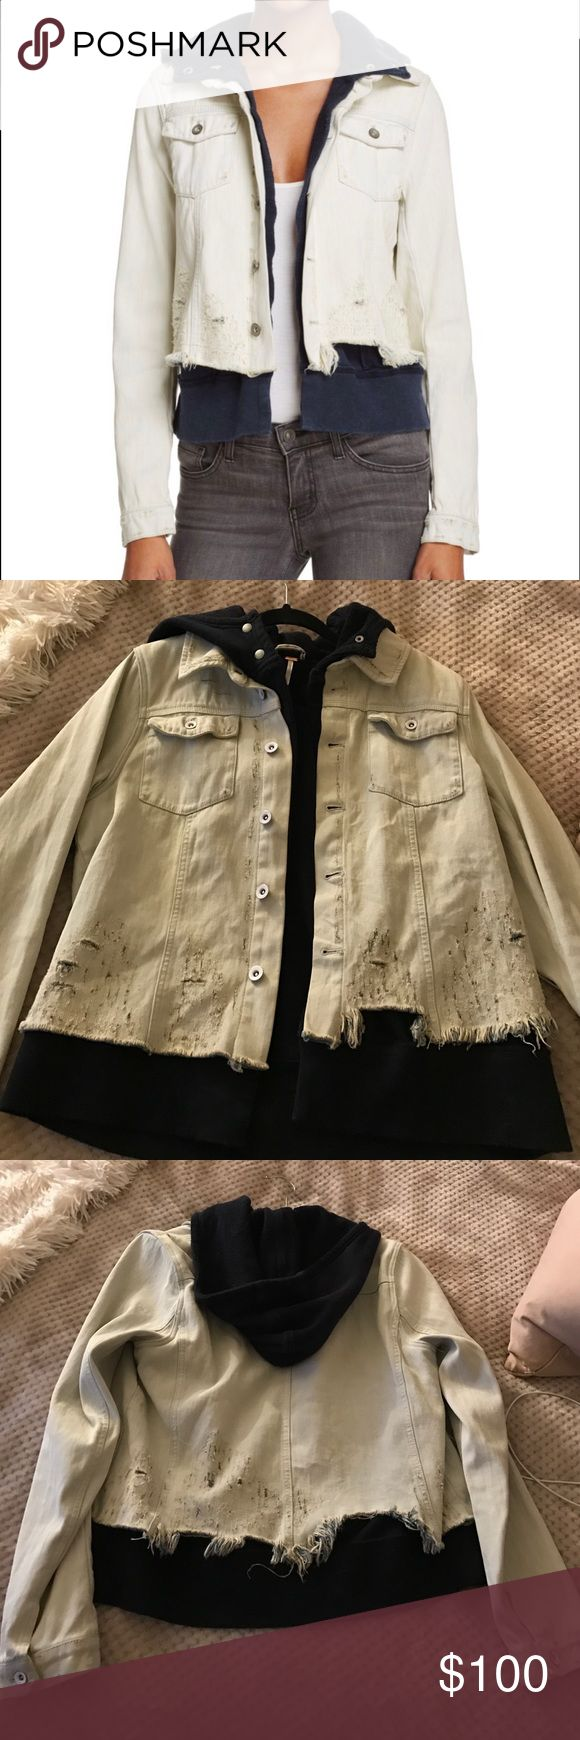 Free People Distressed Denim Jacket Spring 2017 Free People denim jacket with navy sweatshirt lining and hood. Only worn once in very good condition! Bought size larger for a grunge trend look. Free People Jackets & Coats Jean Jackets